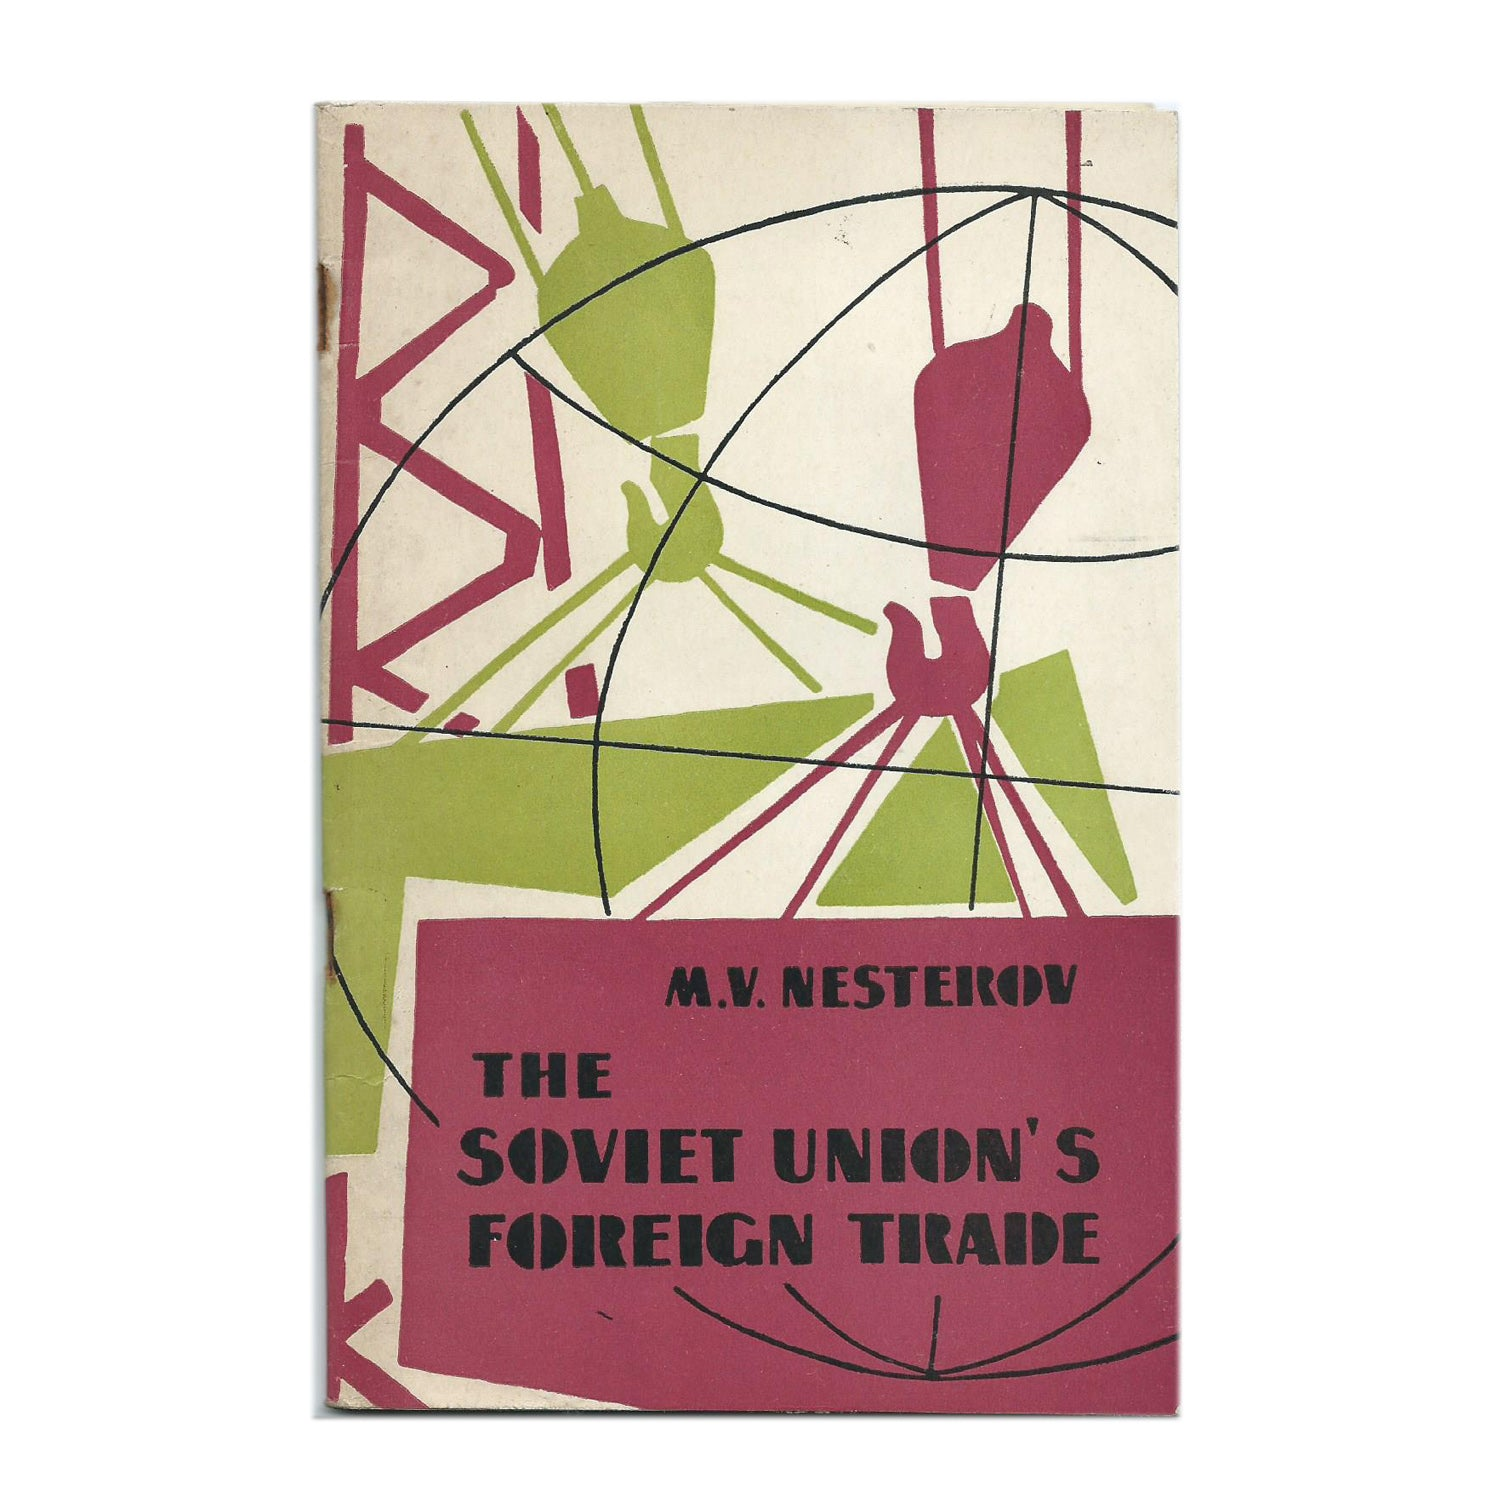 The Soviet Union's Foreign Trade (booklet)